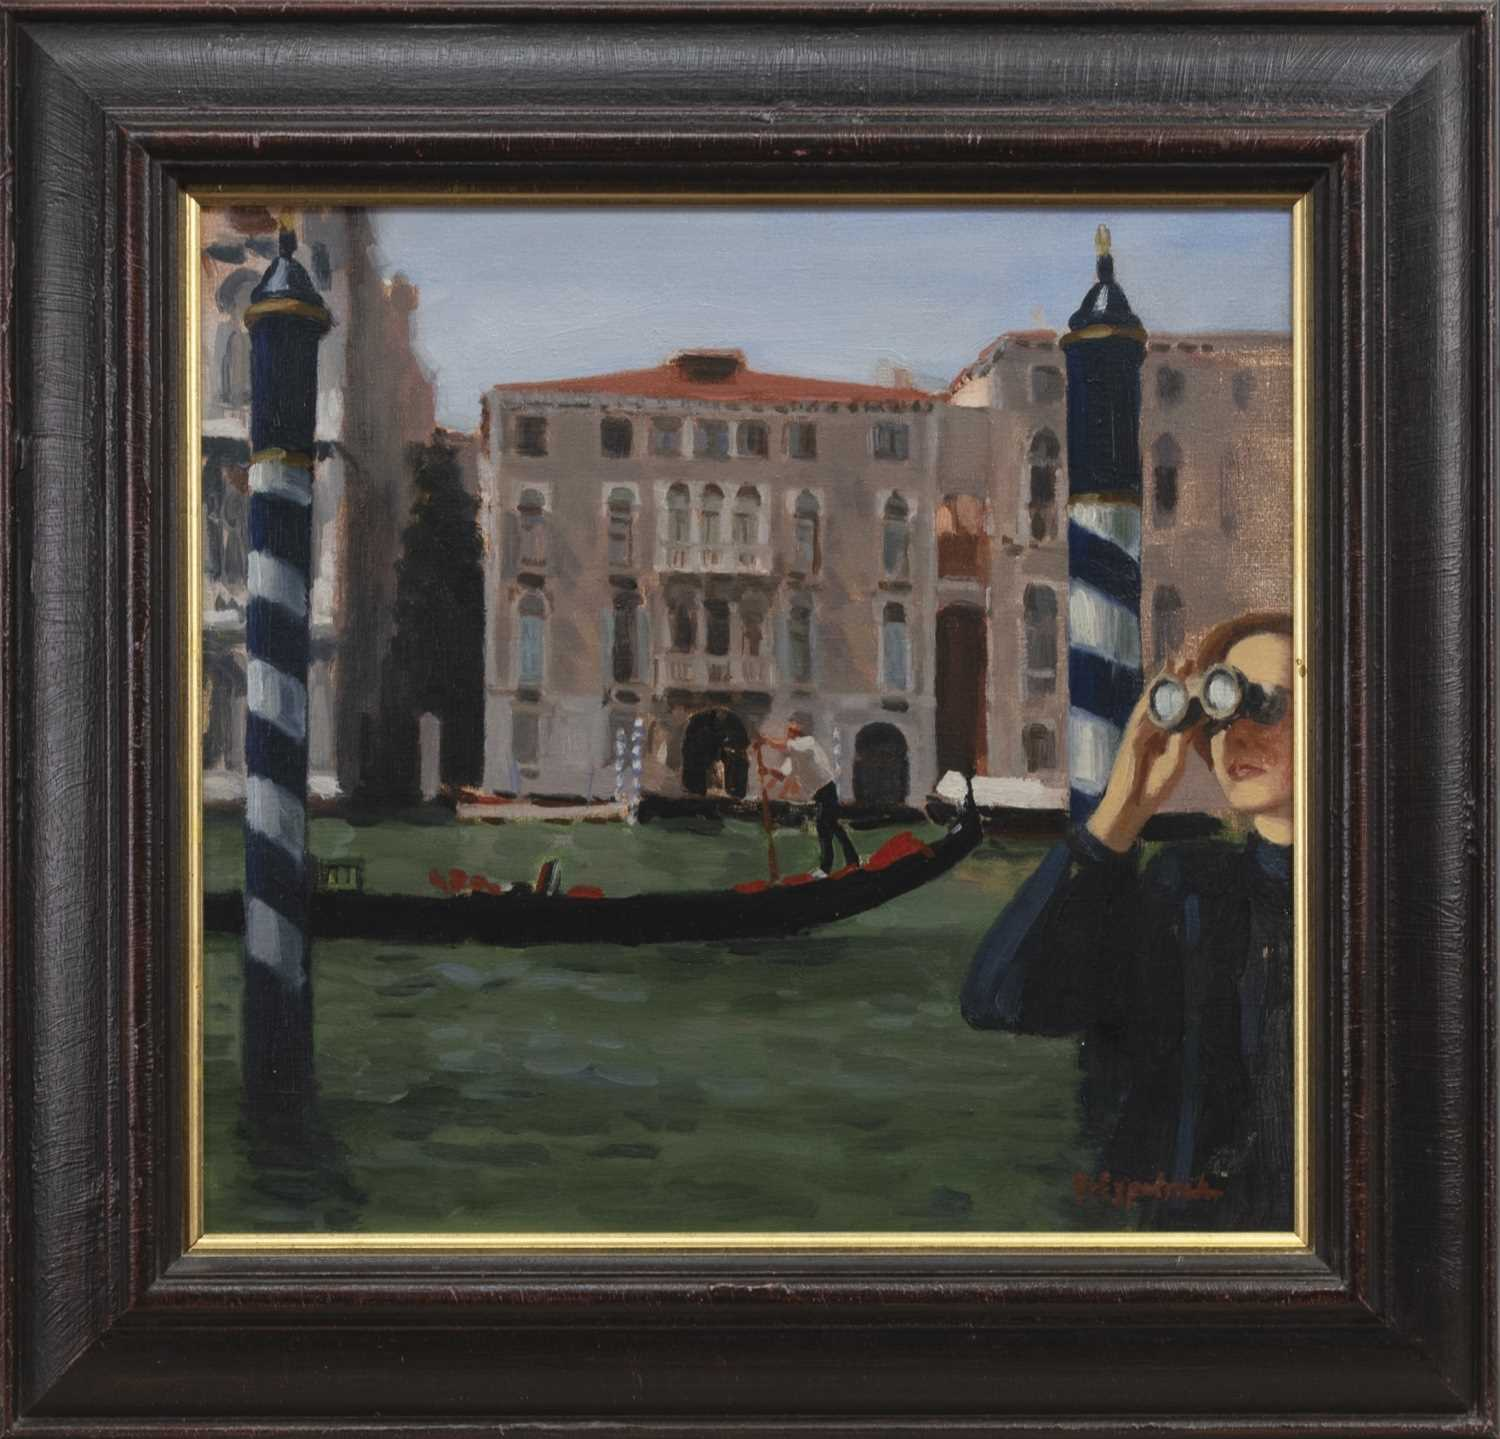 Lot 560 - VENICE SCENE, AN OIL BY ANDREW FITZPATRICK